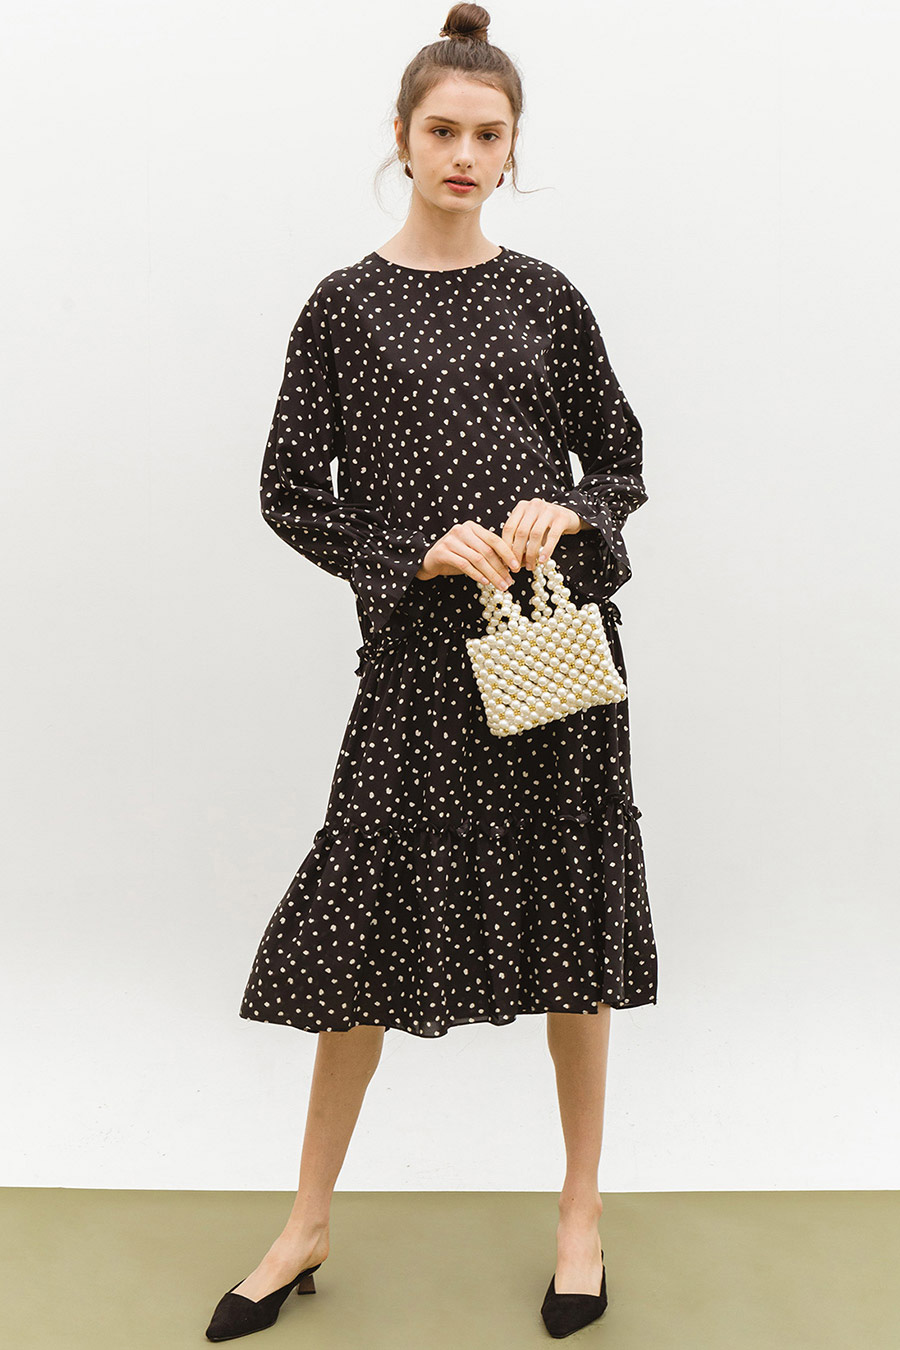 CORA DRESS - NOIR DOTTY